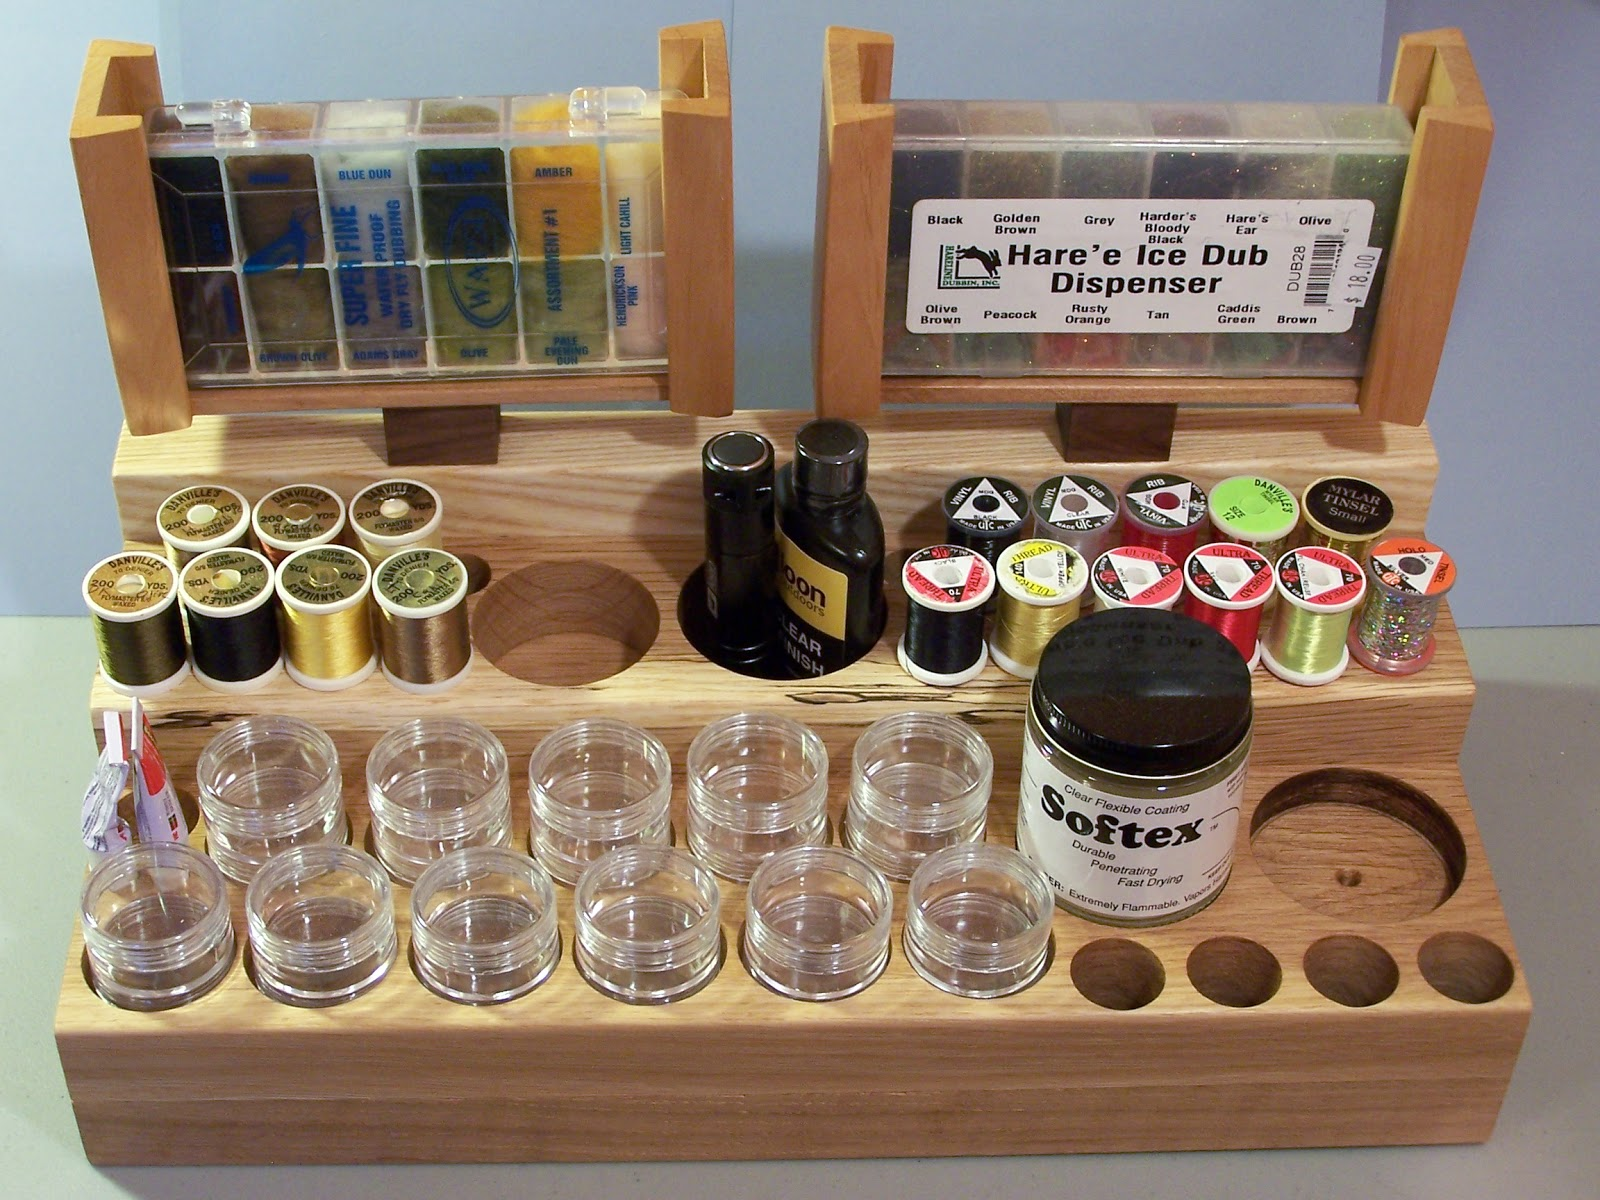 Marvelous Fly Tying Bench Ideas Part - 7: Mr. Jay Burge Of Finest Fly Tying Benches Of Colorado Designed An Accessory  Stand And Wanted Me To Try It Out. So After Having Used The Side Caddy For  Some ...